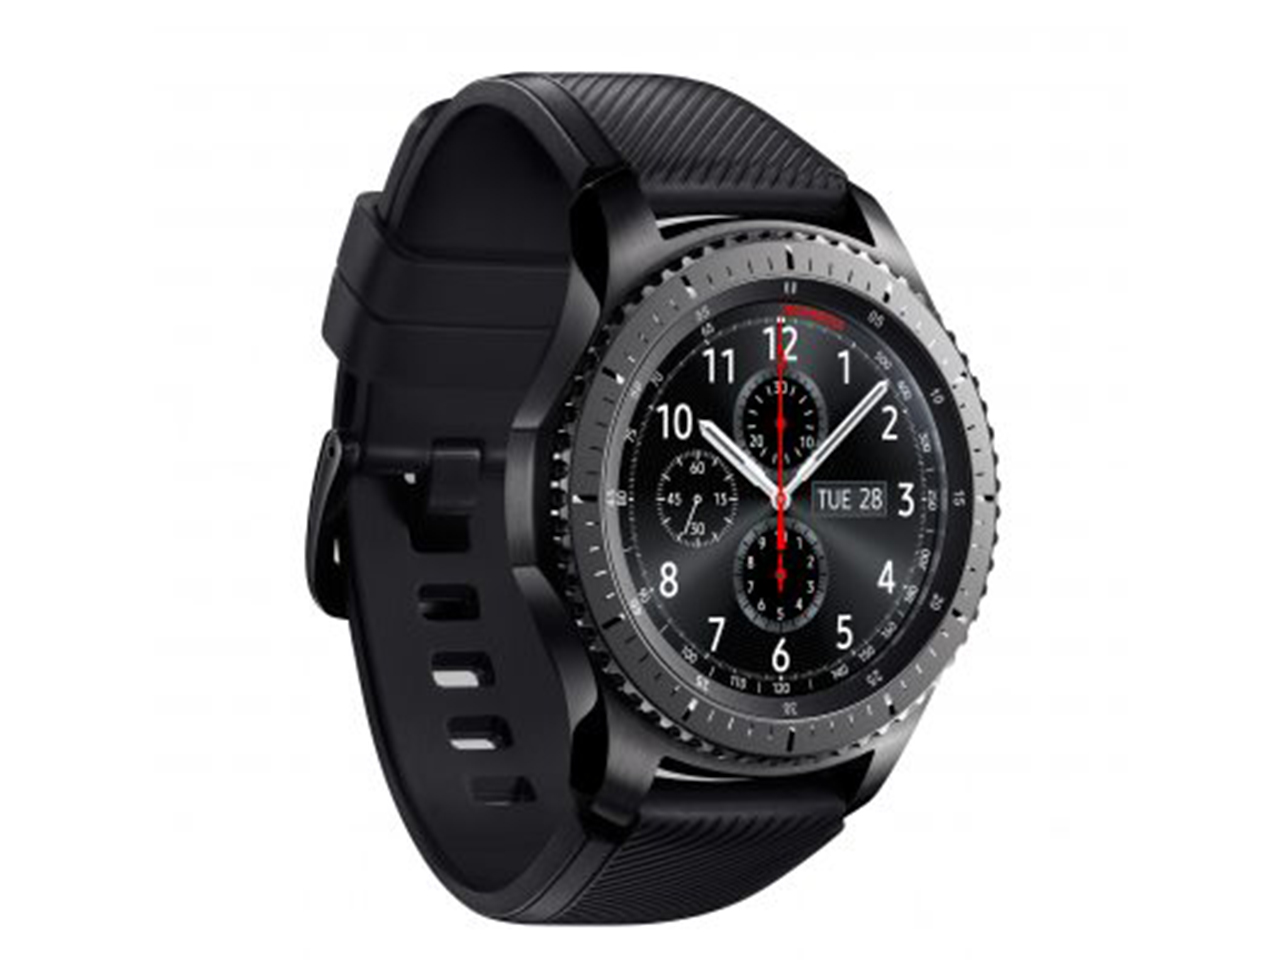 bluetooth smartphone rugged no smartwatch sport views more and android waterproof connect ios rug